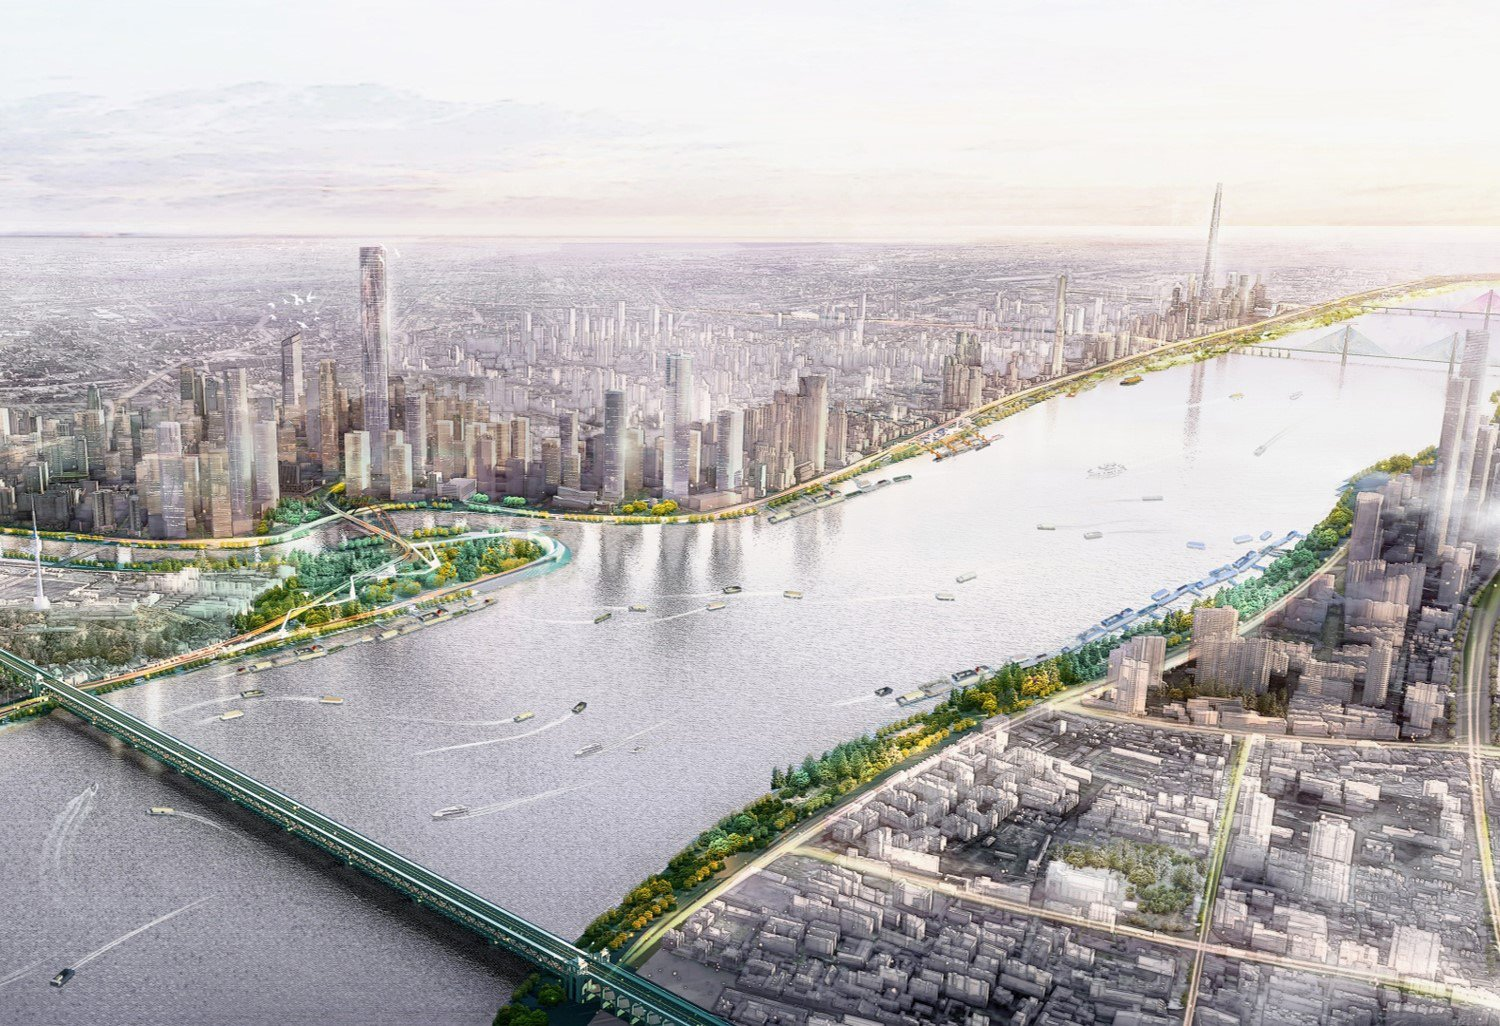 EXPANDING CONNECTIVITY AND ACCESSIBILITY: Straddling both banks of the Yangtze, the expanded riverfront park provides a landscape foreground to Wuhan's skyline, creating a contiguous public waterfront. SASAKI